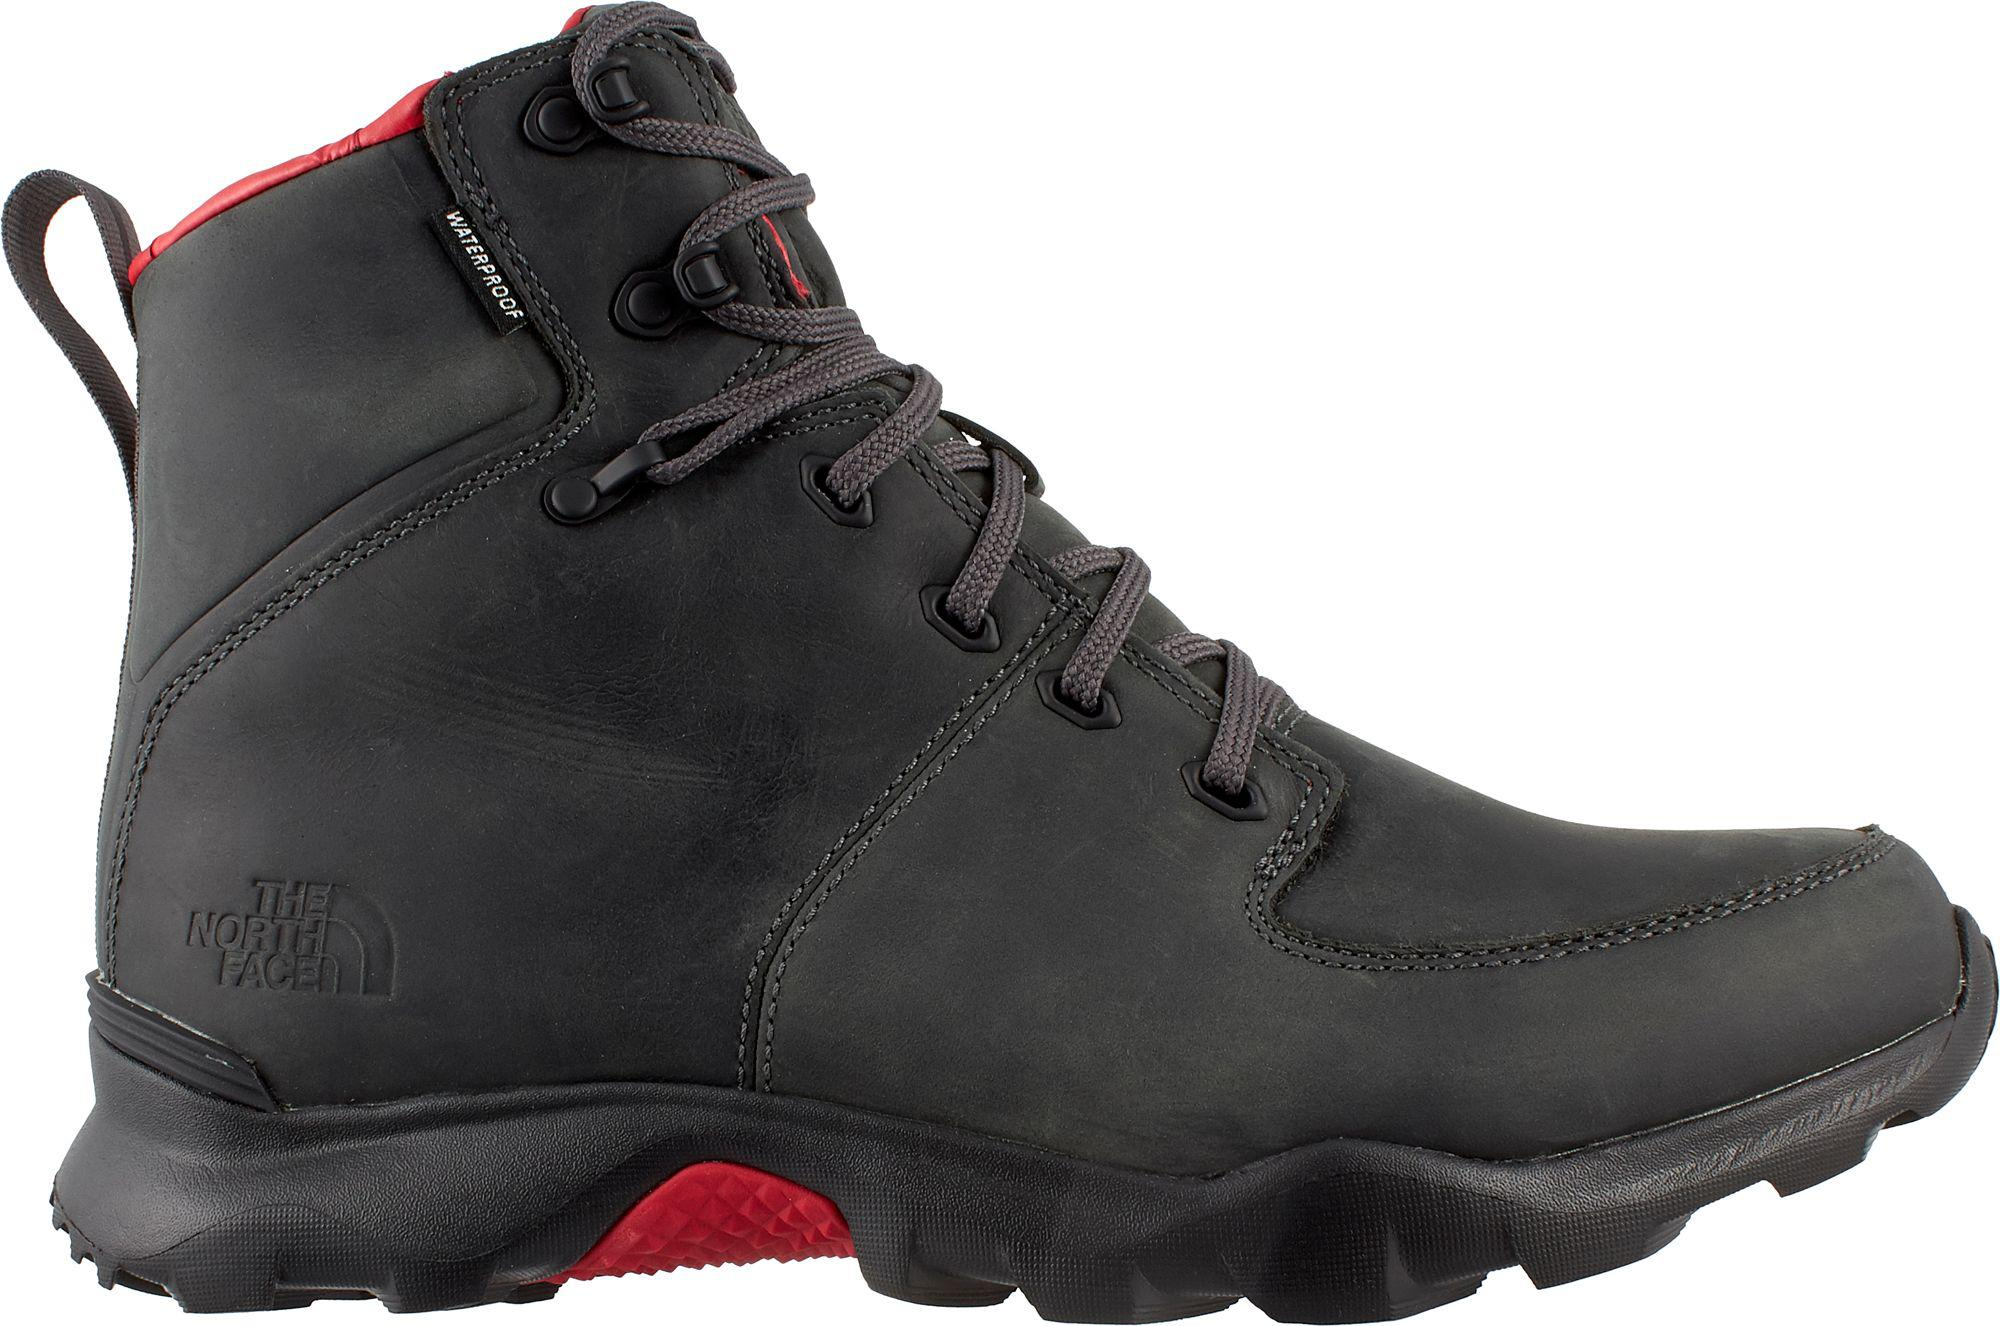 86d6002a3855 The North Face - Gray Thermoball Versa 100g Waterproof Winter Boots for Men  - Lyst